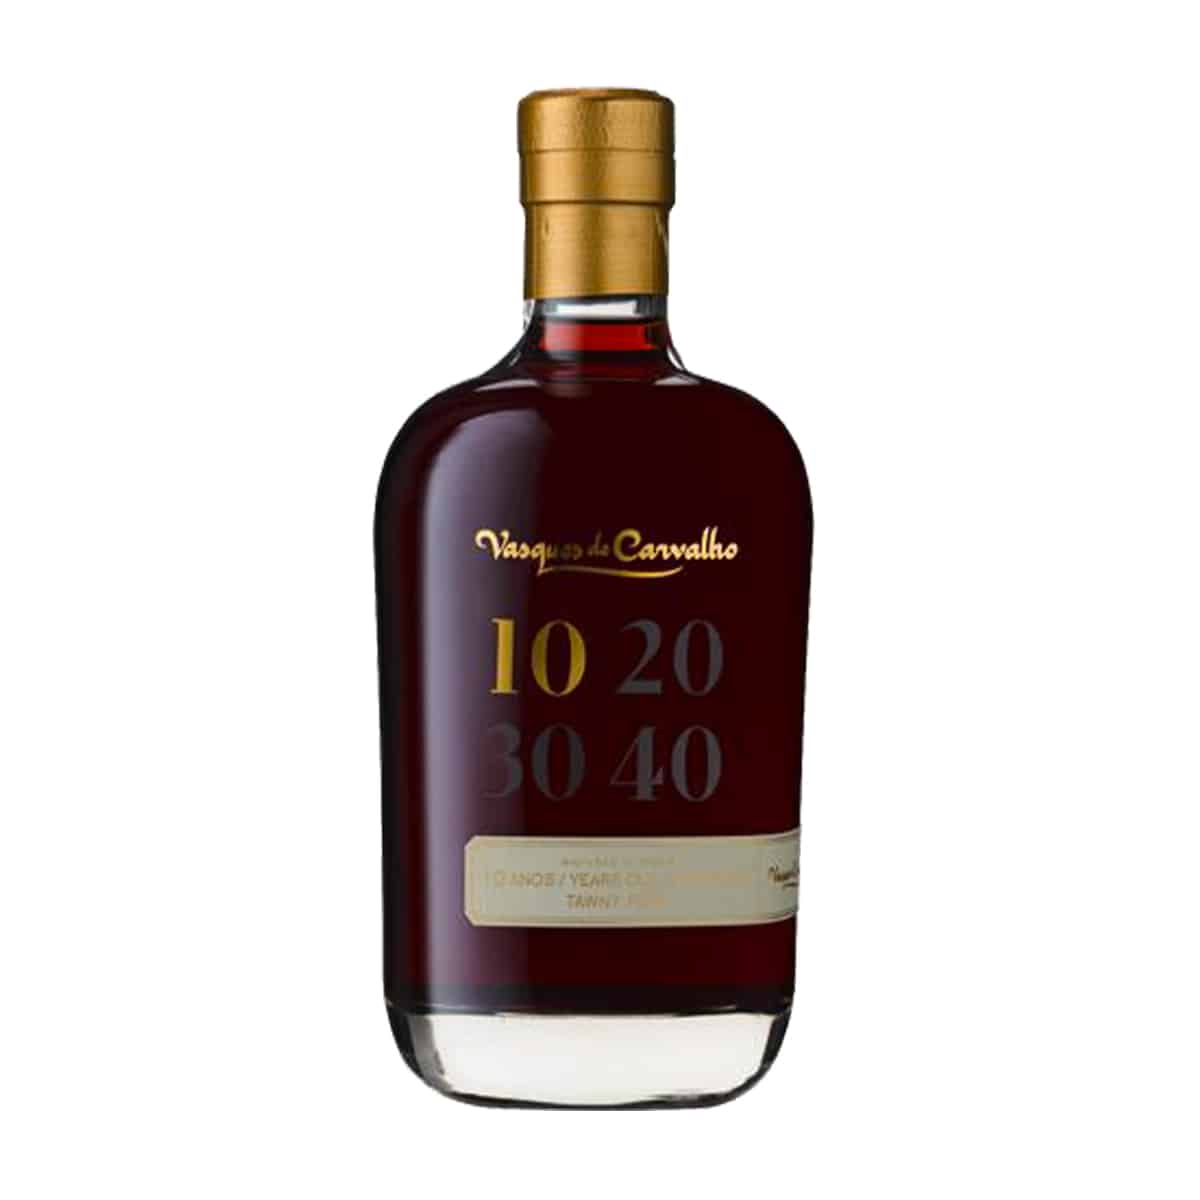 Tawny 10 Years Old, Vasques de Carvalho